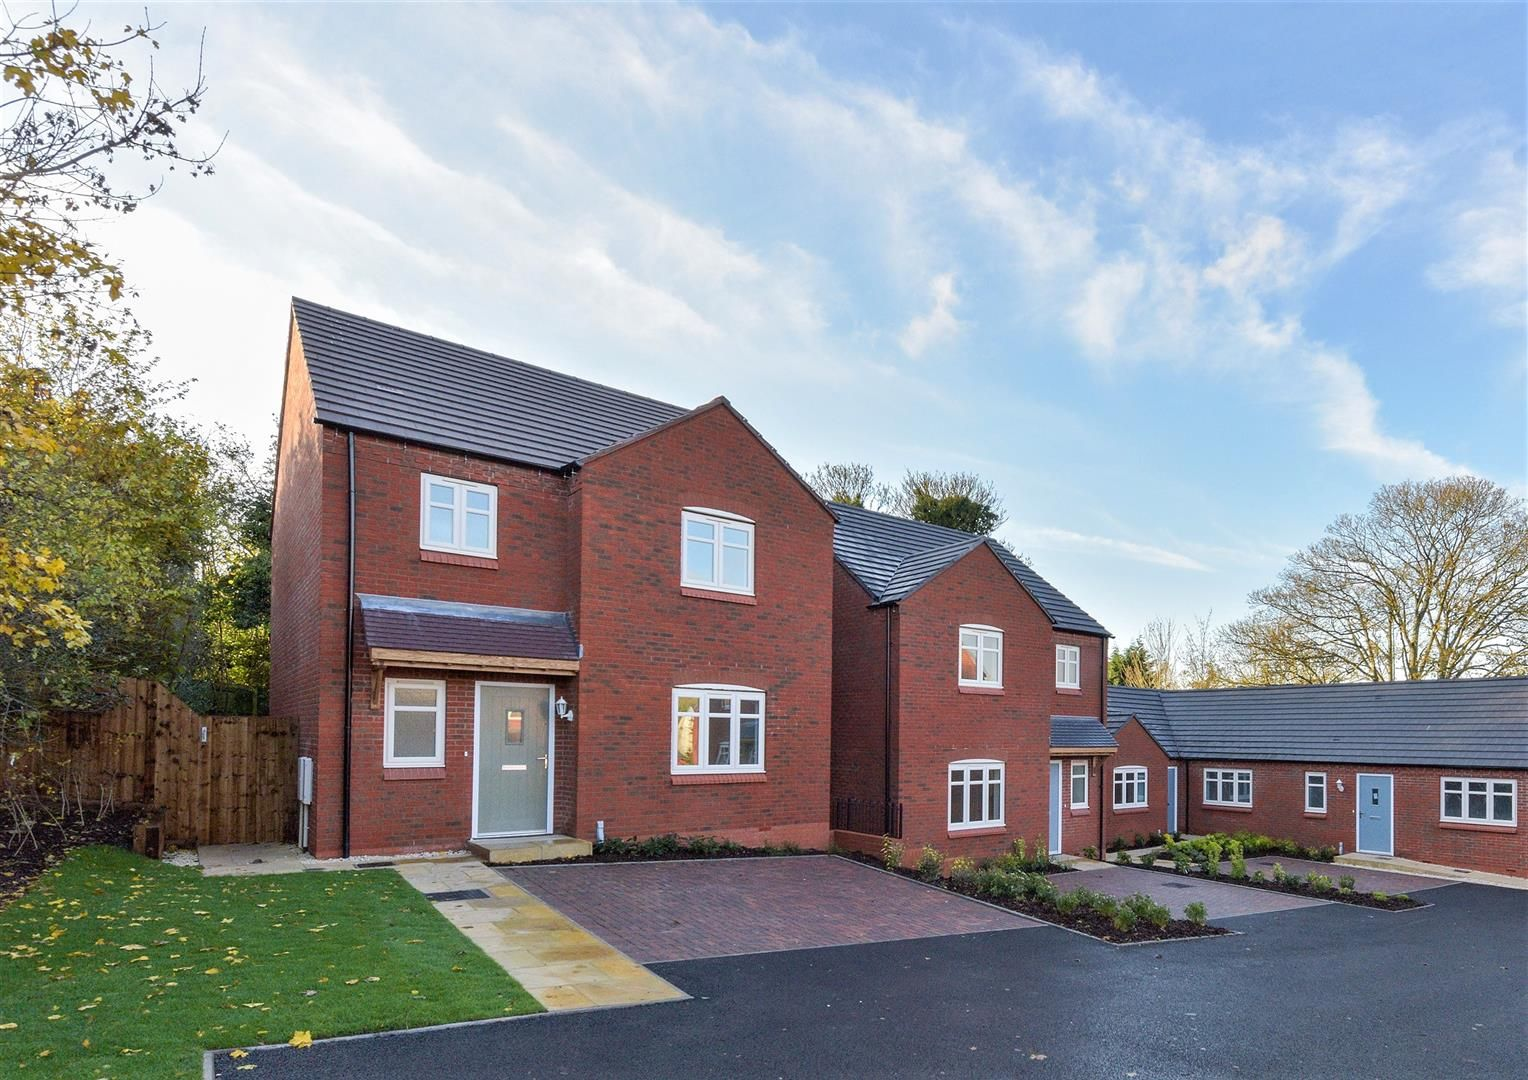 3 bed detached for sale  - Property Image 1